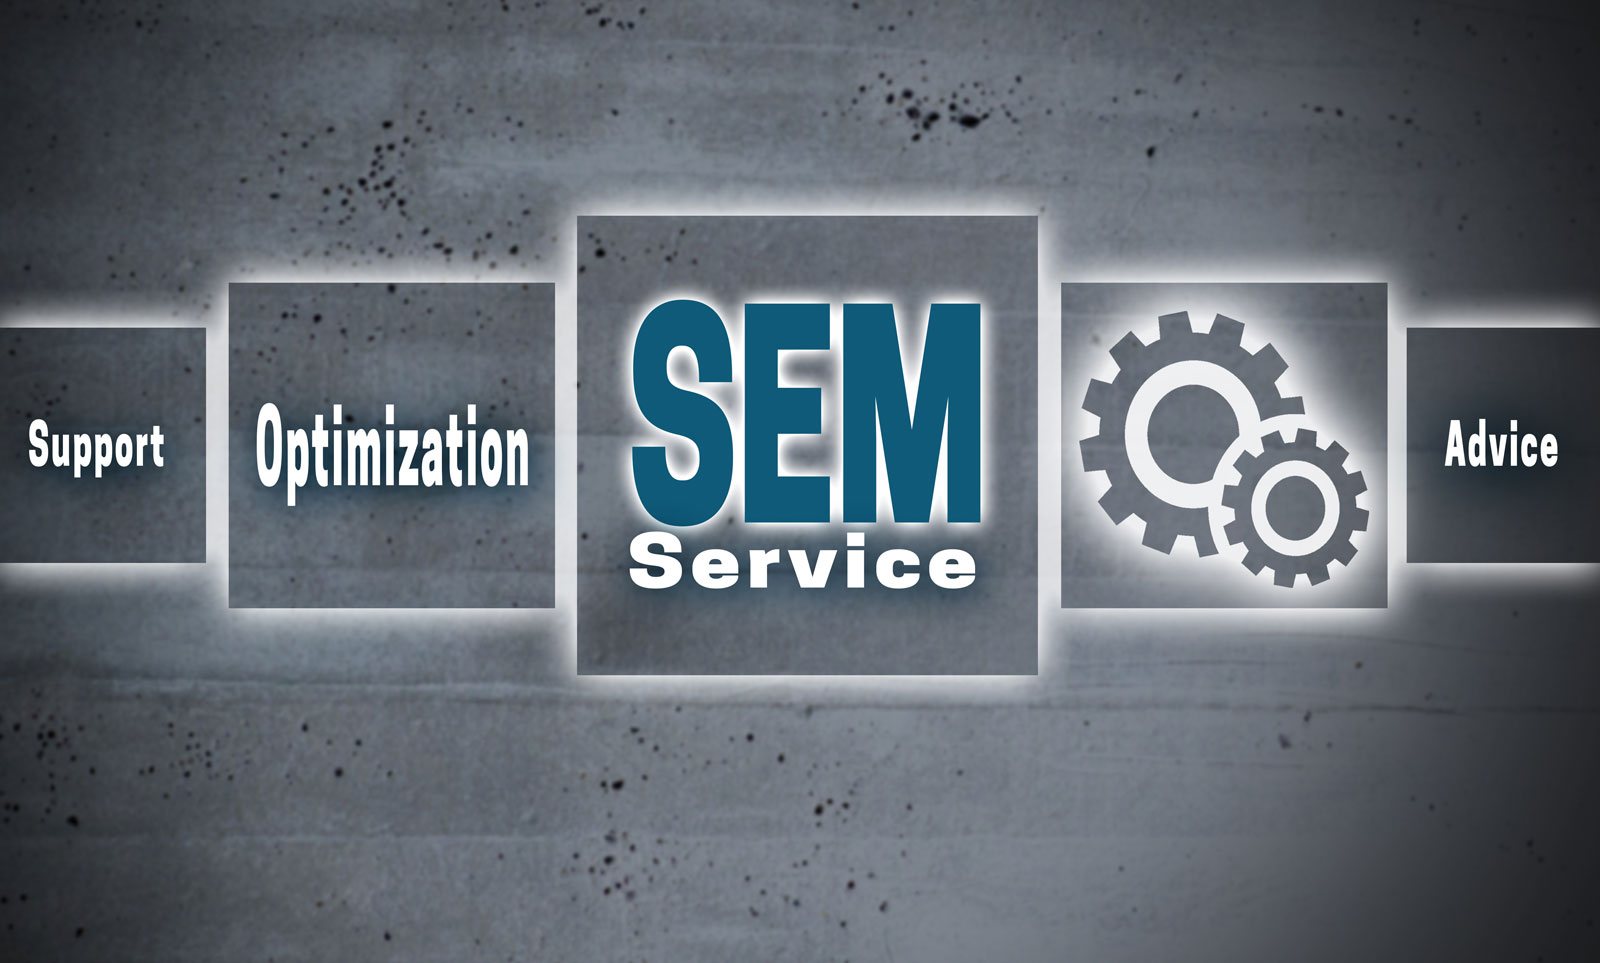 SEM Service | SEM vs. SEO: Help Deciding Which Is Best For Your Business